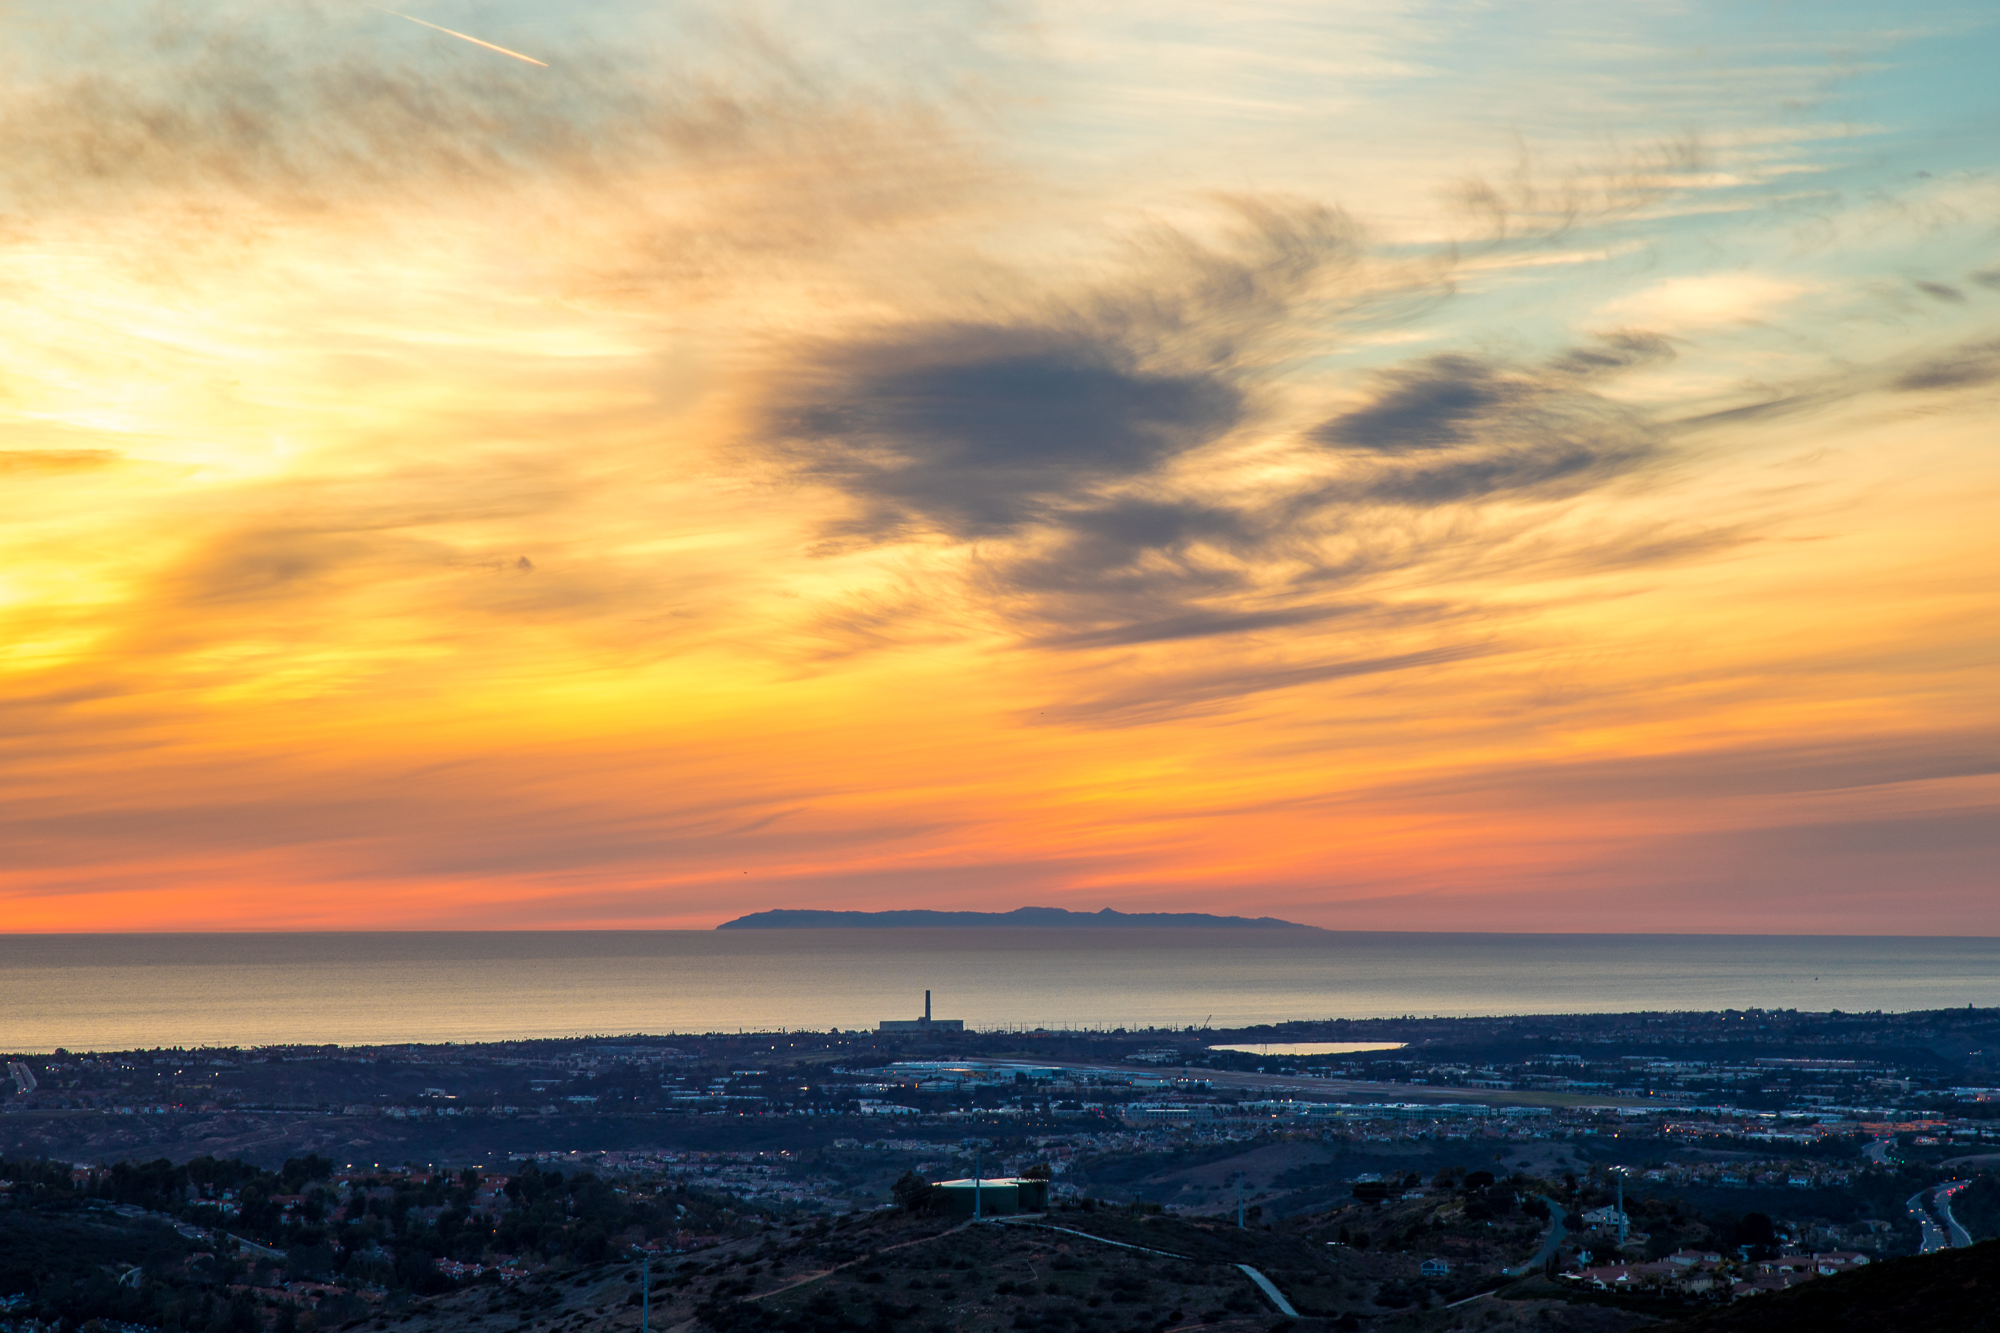 catalina island over carlsbad from san elijo hills 3.5.18